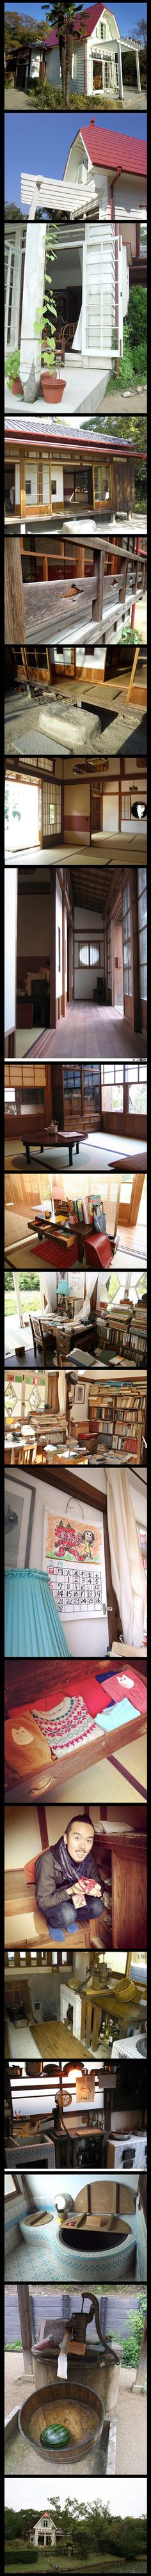 My Neighbor Totoro's House Recreated in Real-Life, Complete with Furnished Interior - TechEBlog